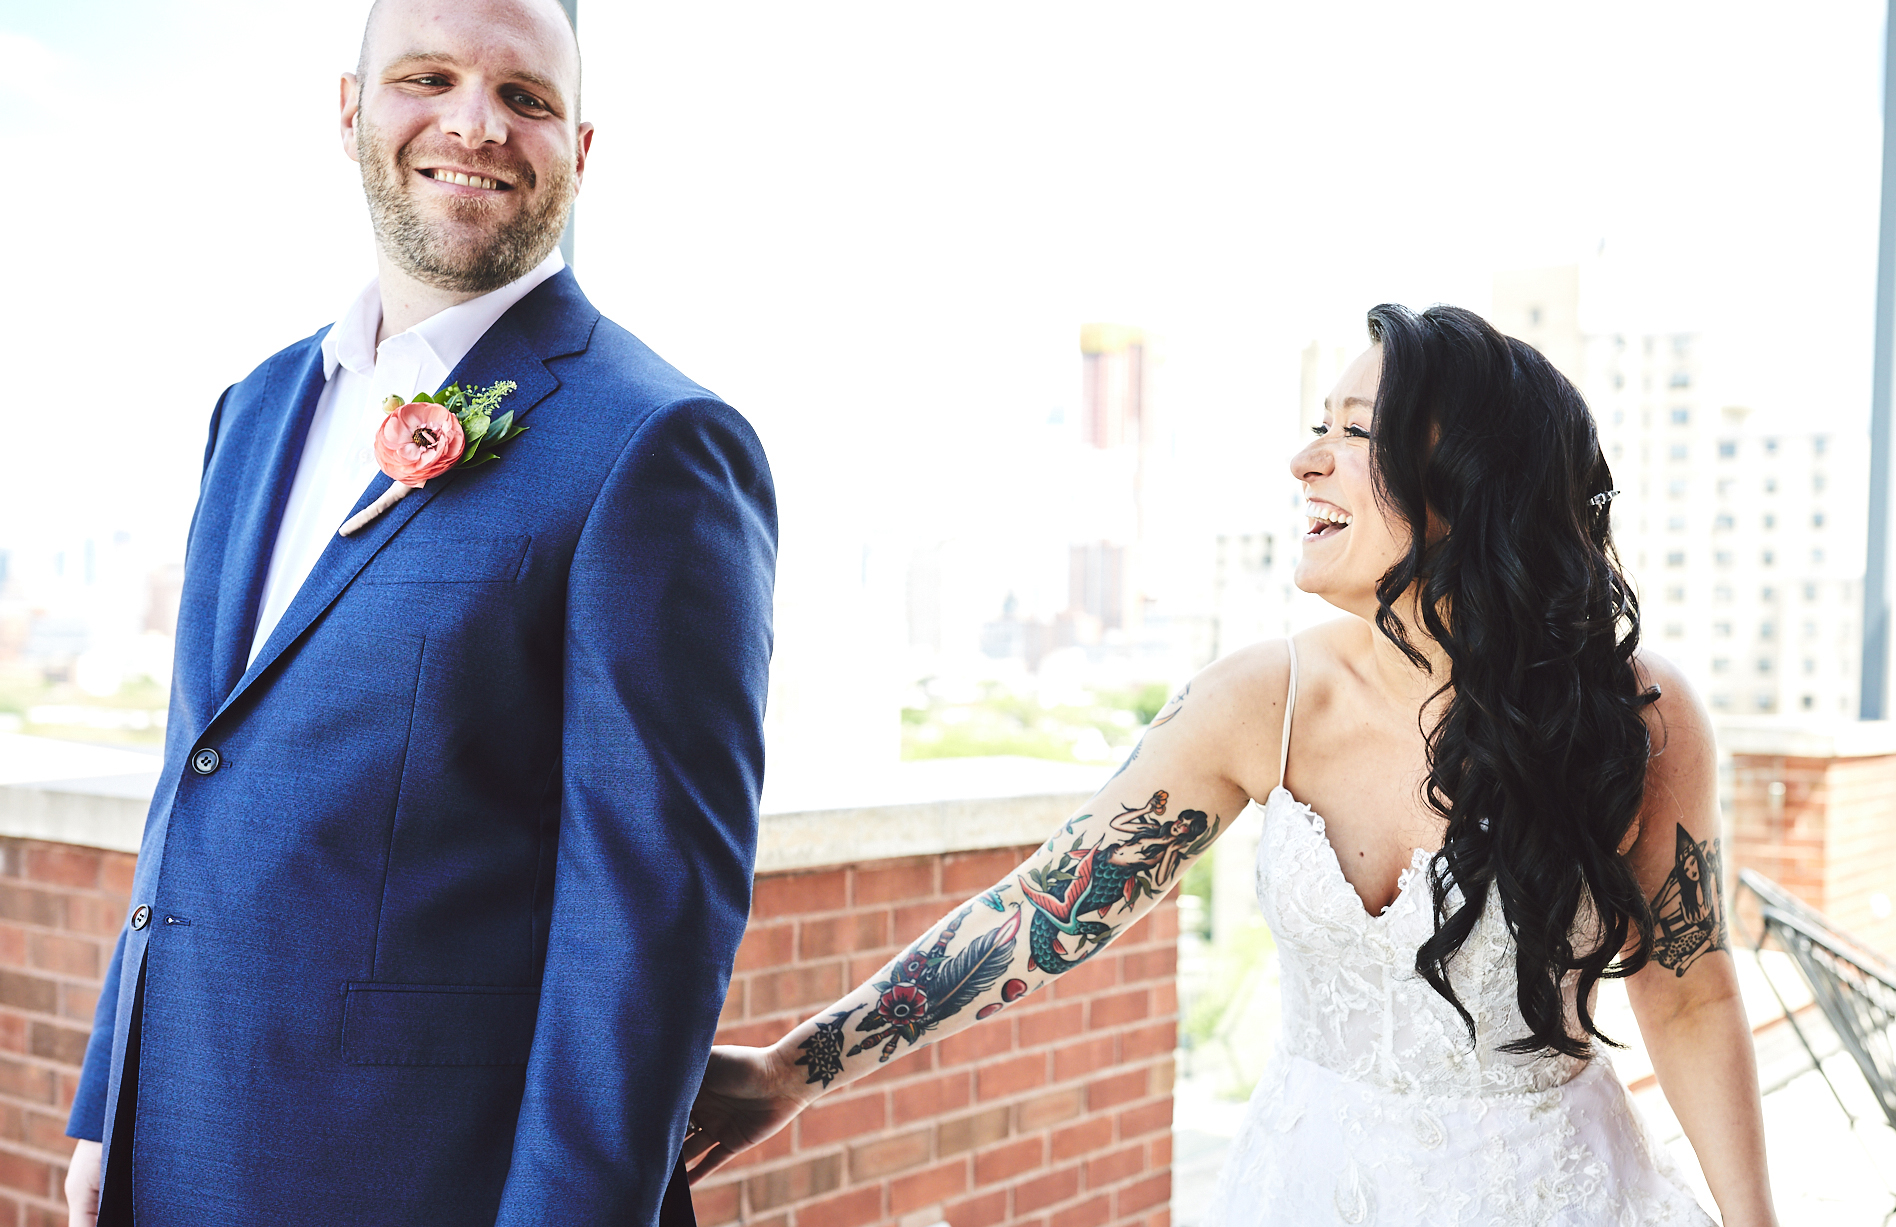 190518_SpringThreesBreweryWedding_By_BriJohnsonWeddings_0041.jpg